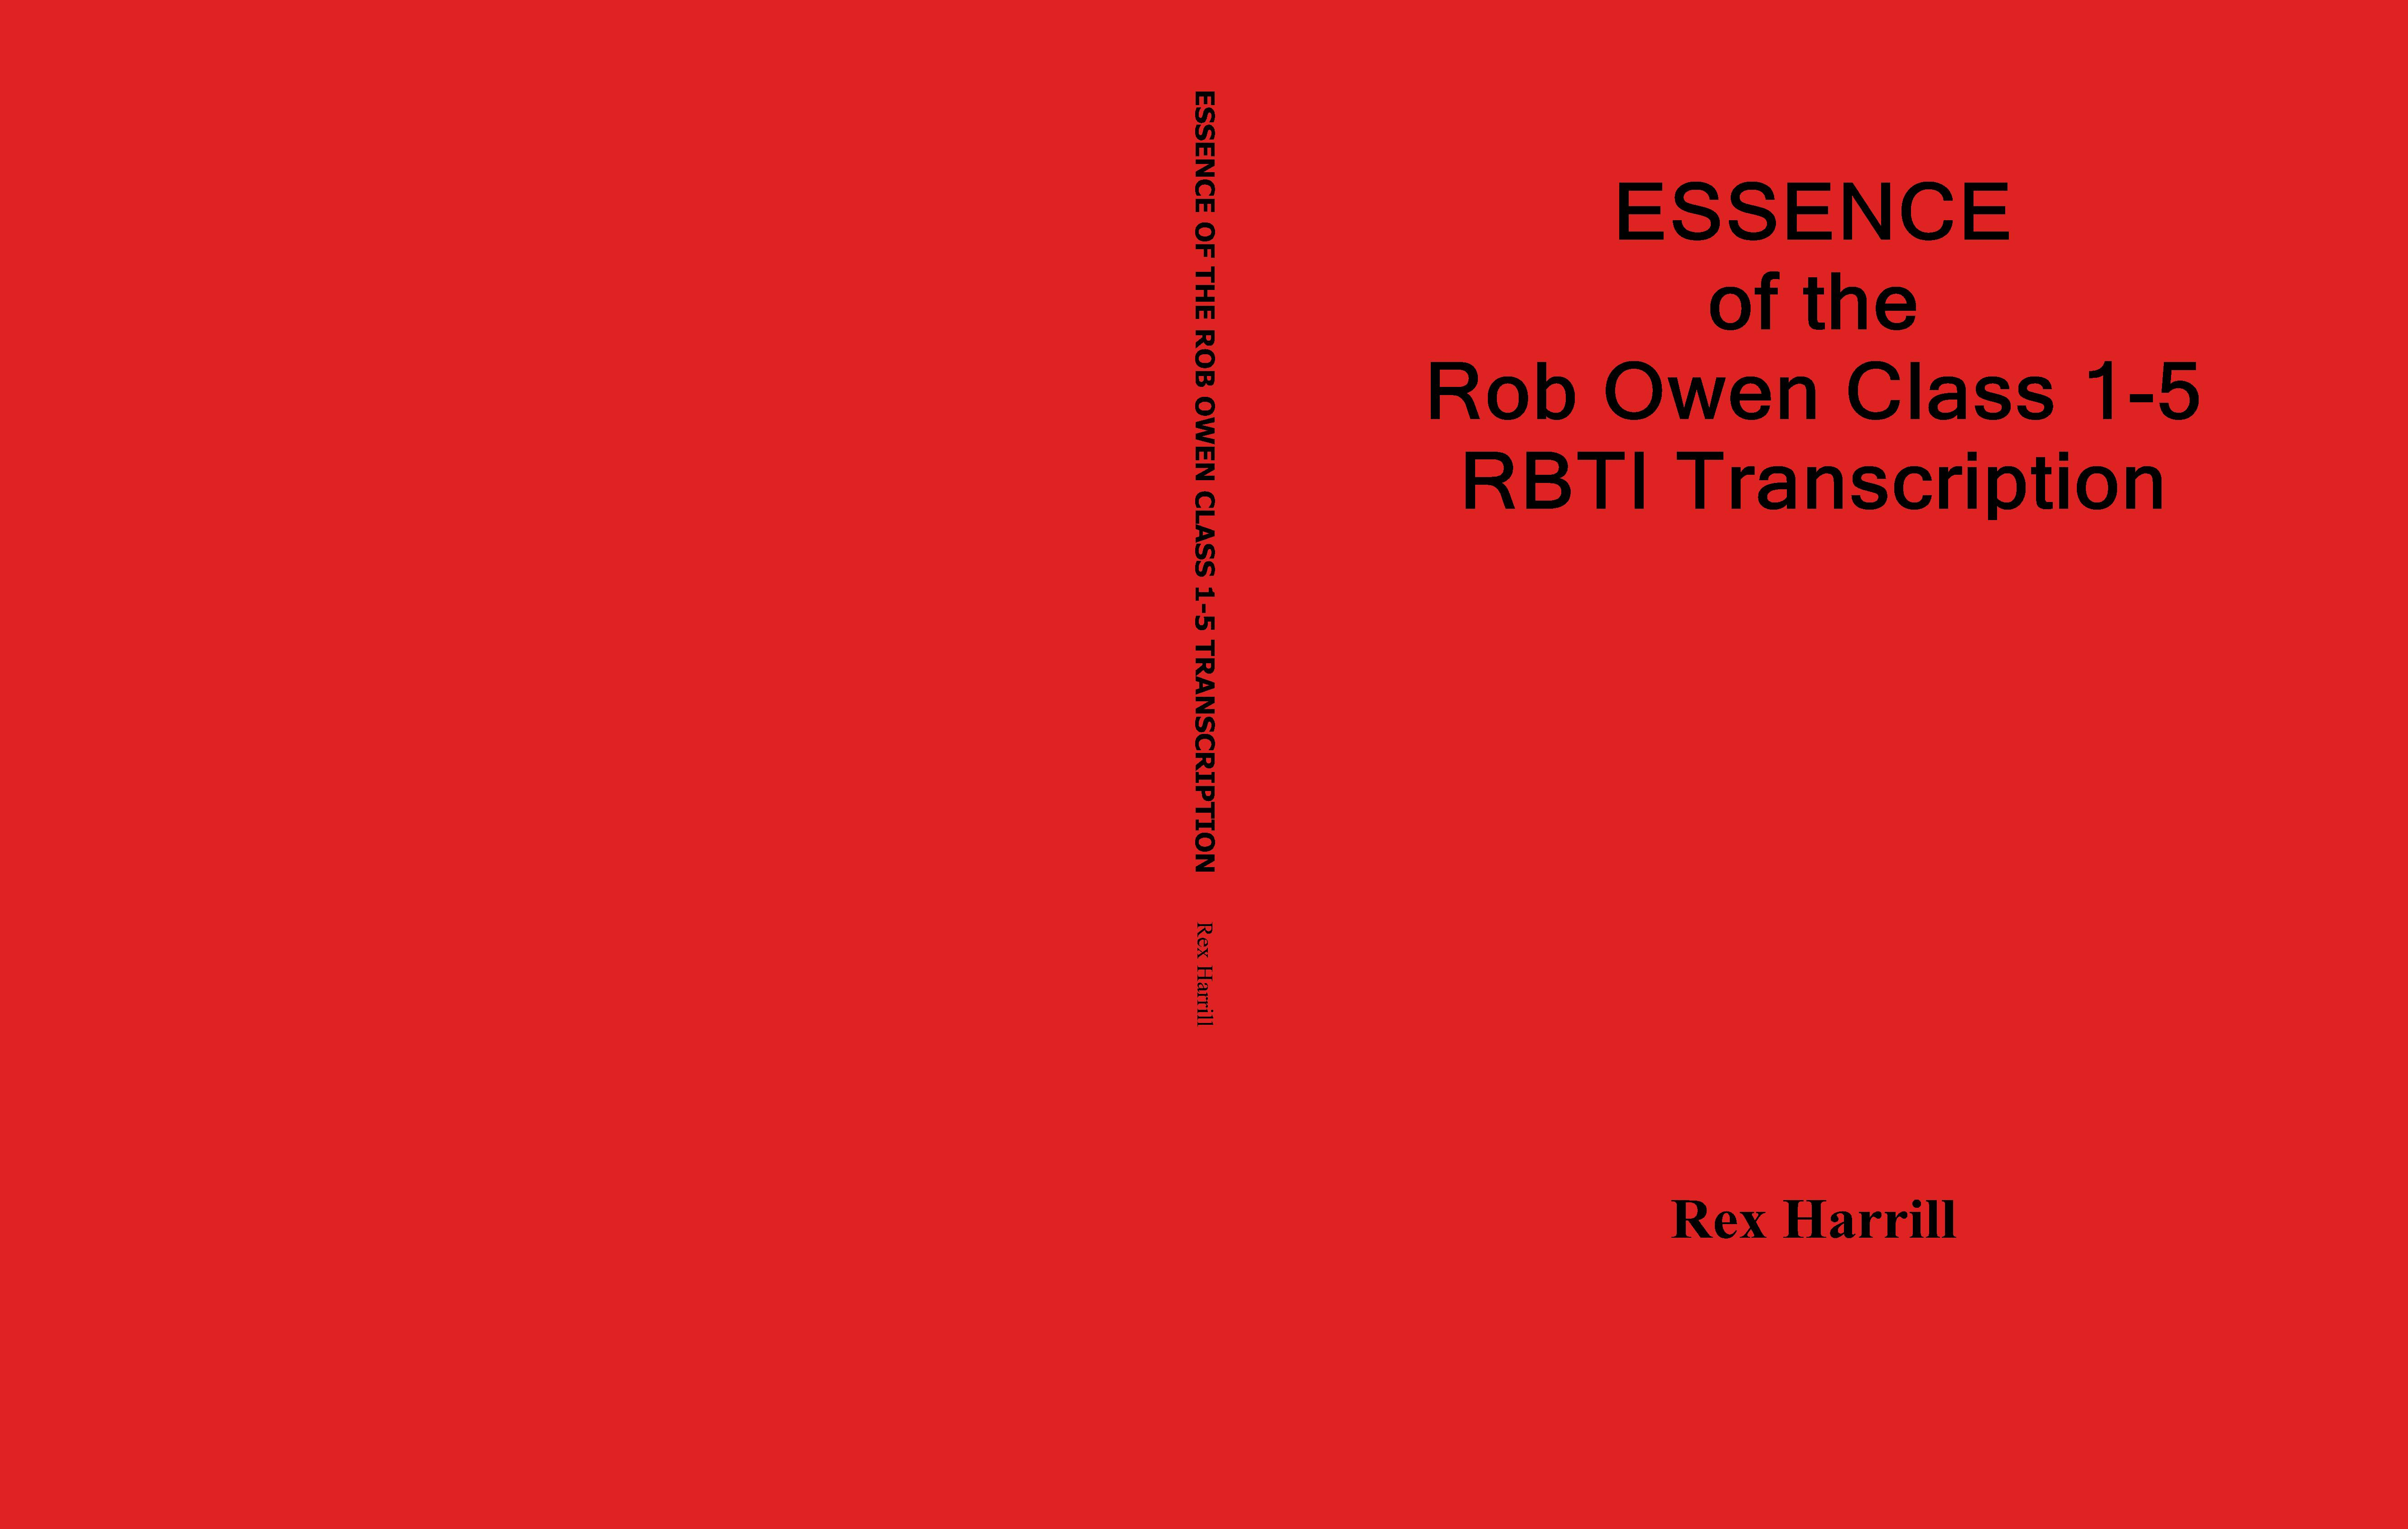 ESSENCE of the Rob Owen Class 1-5 RBTI Transcription cover image